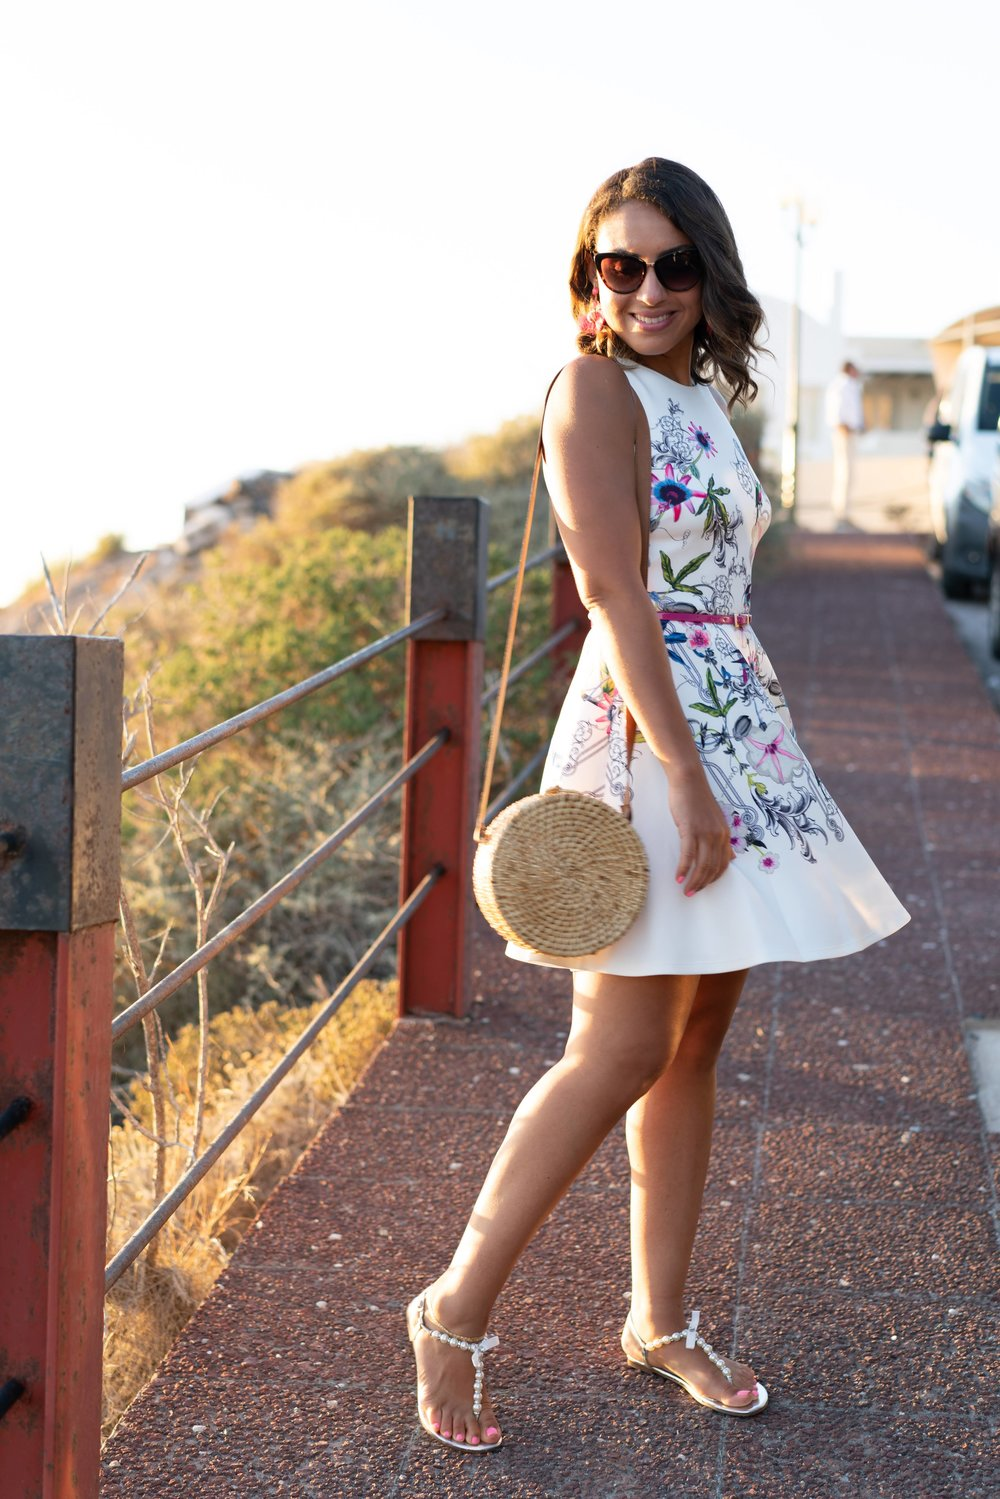 Dress: Ted Baker//  Sandals : Betsy Johnson //  Purse : Forever 21 // Earrings //  Sunglasses : Kate Spade